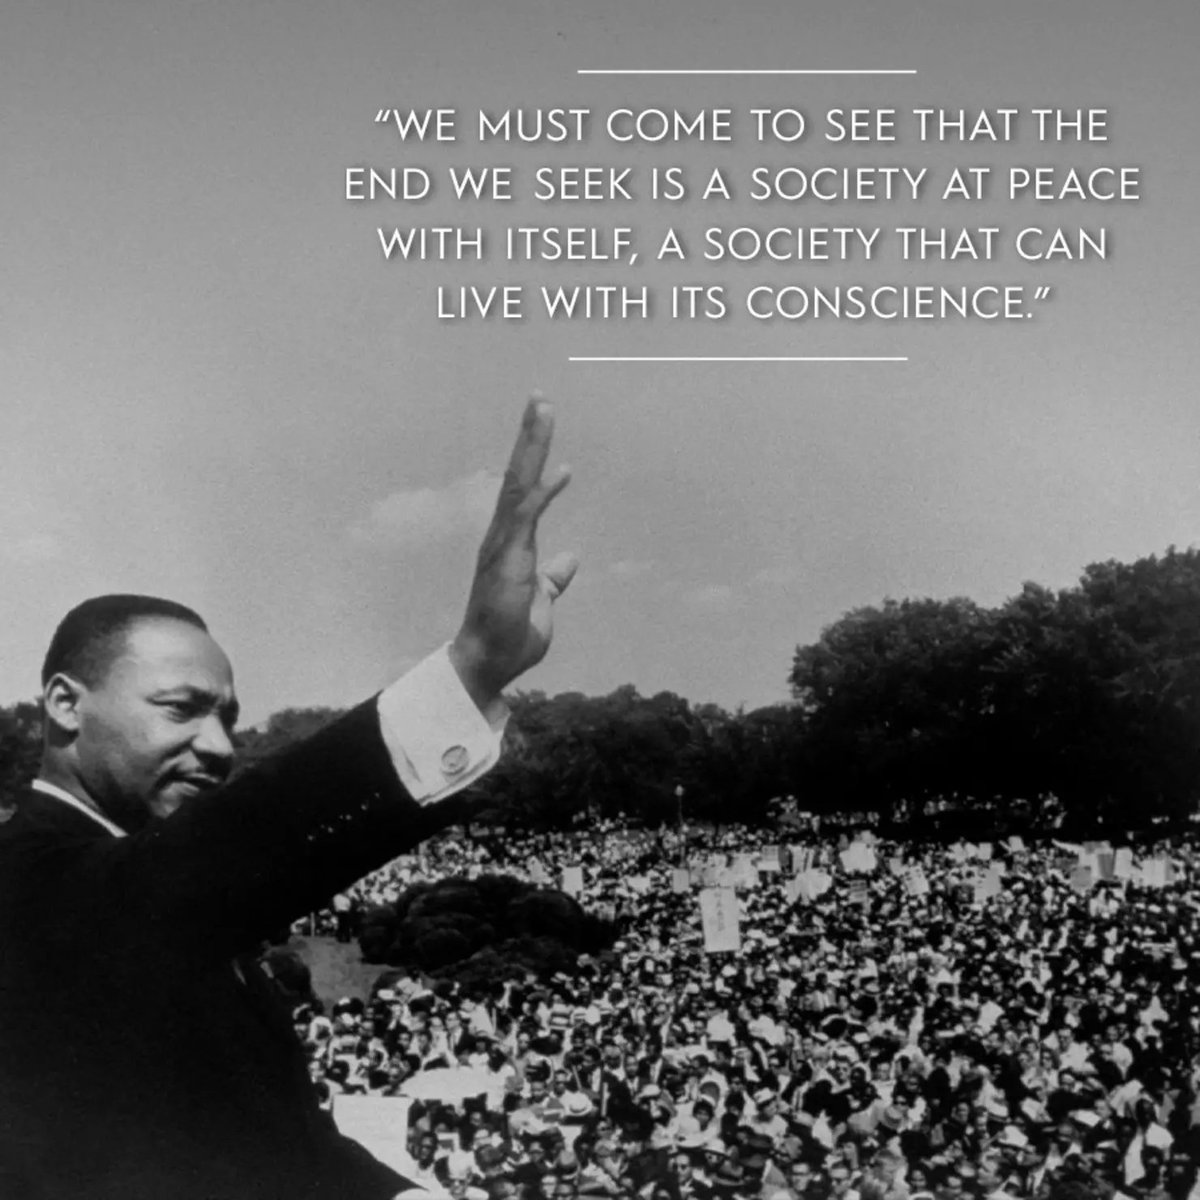 I'm always amazed by all MLK accomplished & the vision he set forth in his short life. How timely his words are today. We must continue to aspire to the greatness he saw in this country's potential and allow his words to guide us. He was our modern Founding Father. Happy MLK Day.